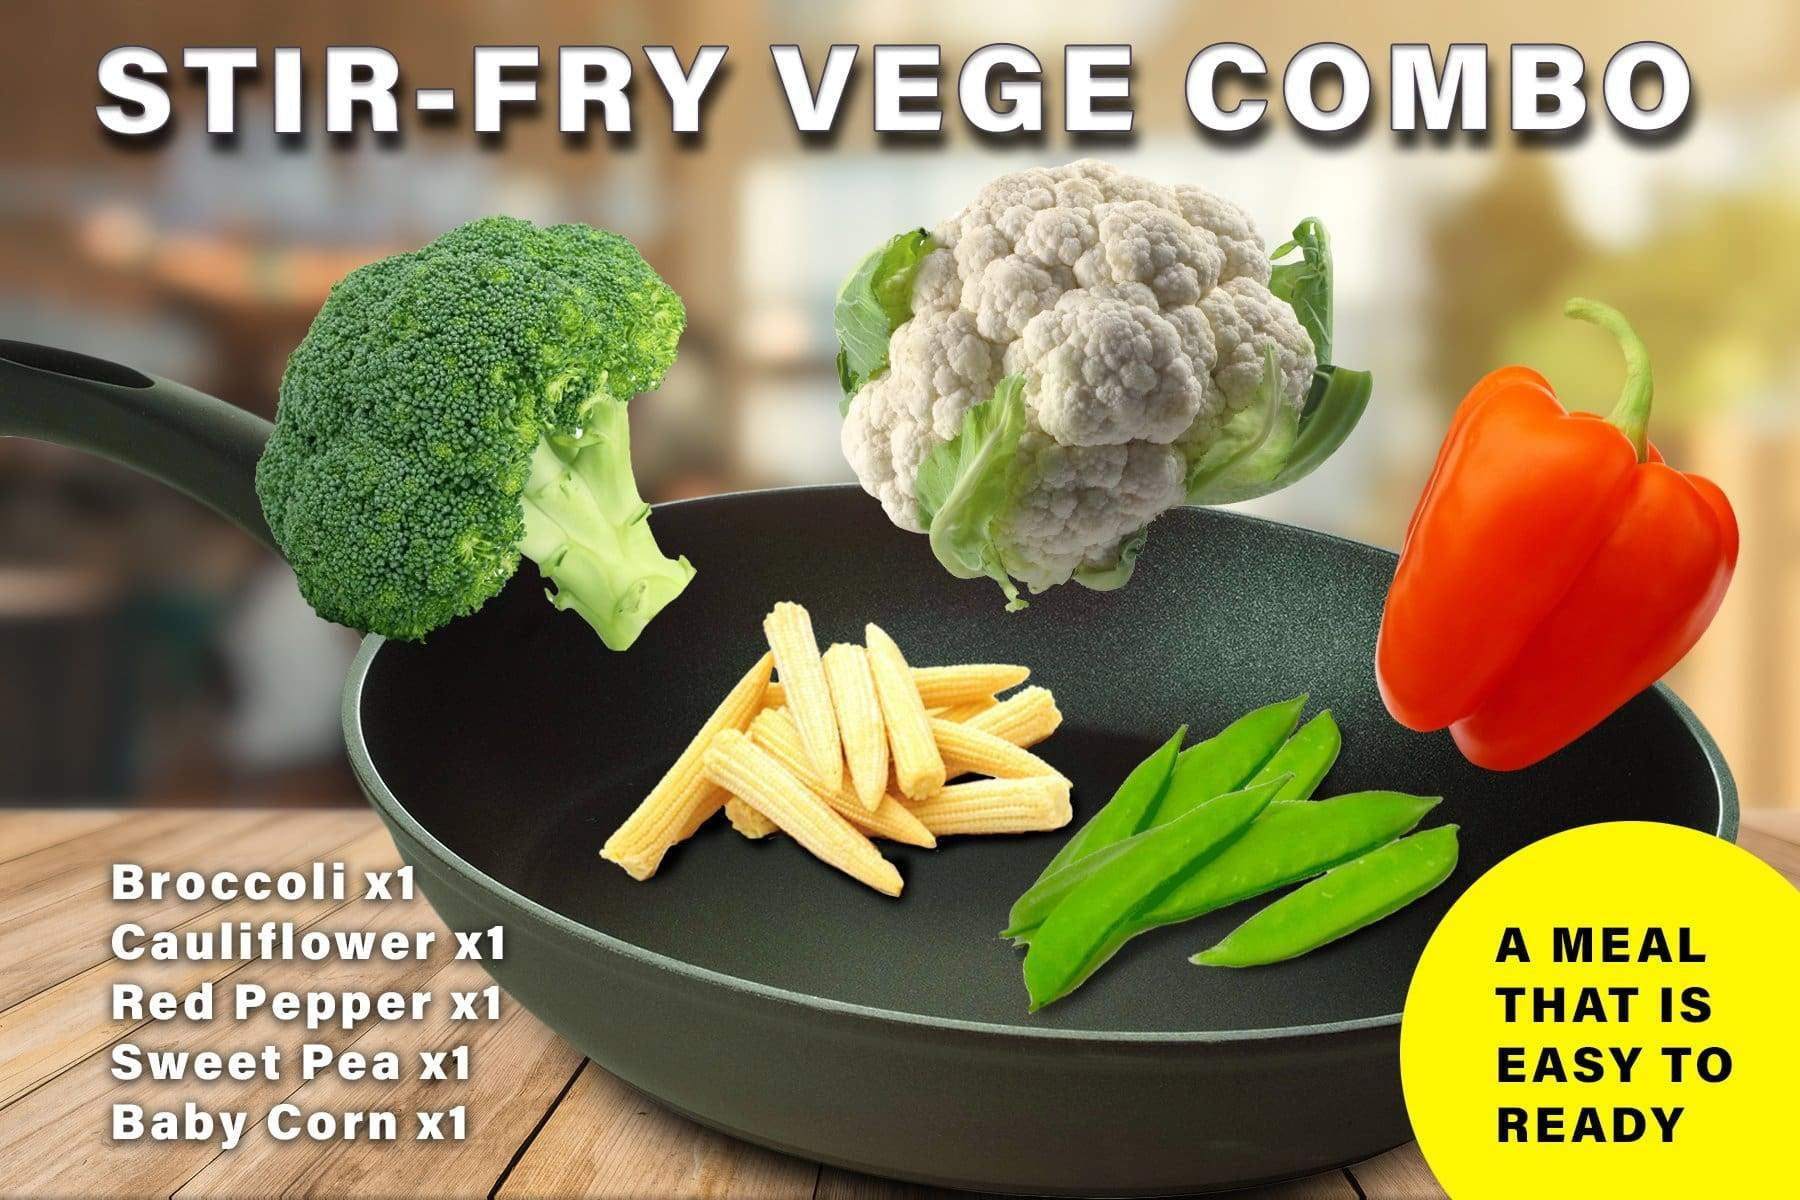 Penang Grocery Store Online Next Day Delivery is Offering Stir-Fry Vege Combo